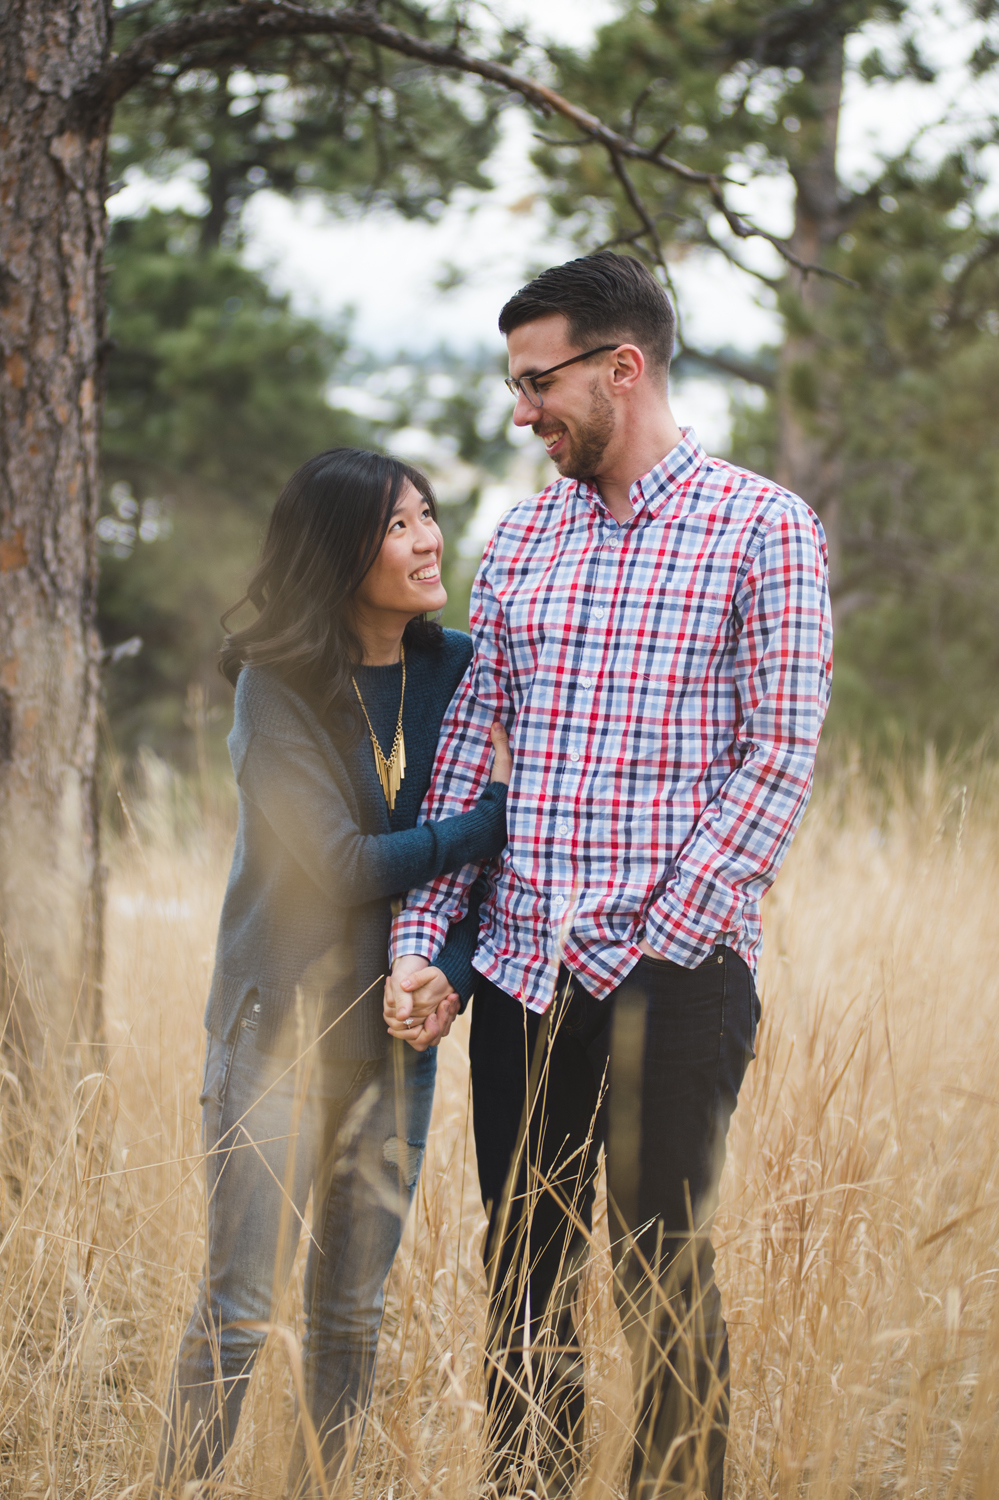 TiffanyandMark_Engaged_0077_squarespace.jpg